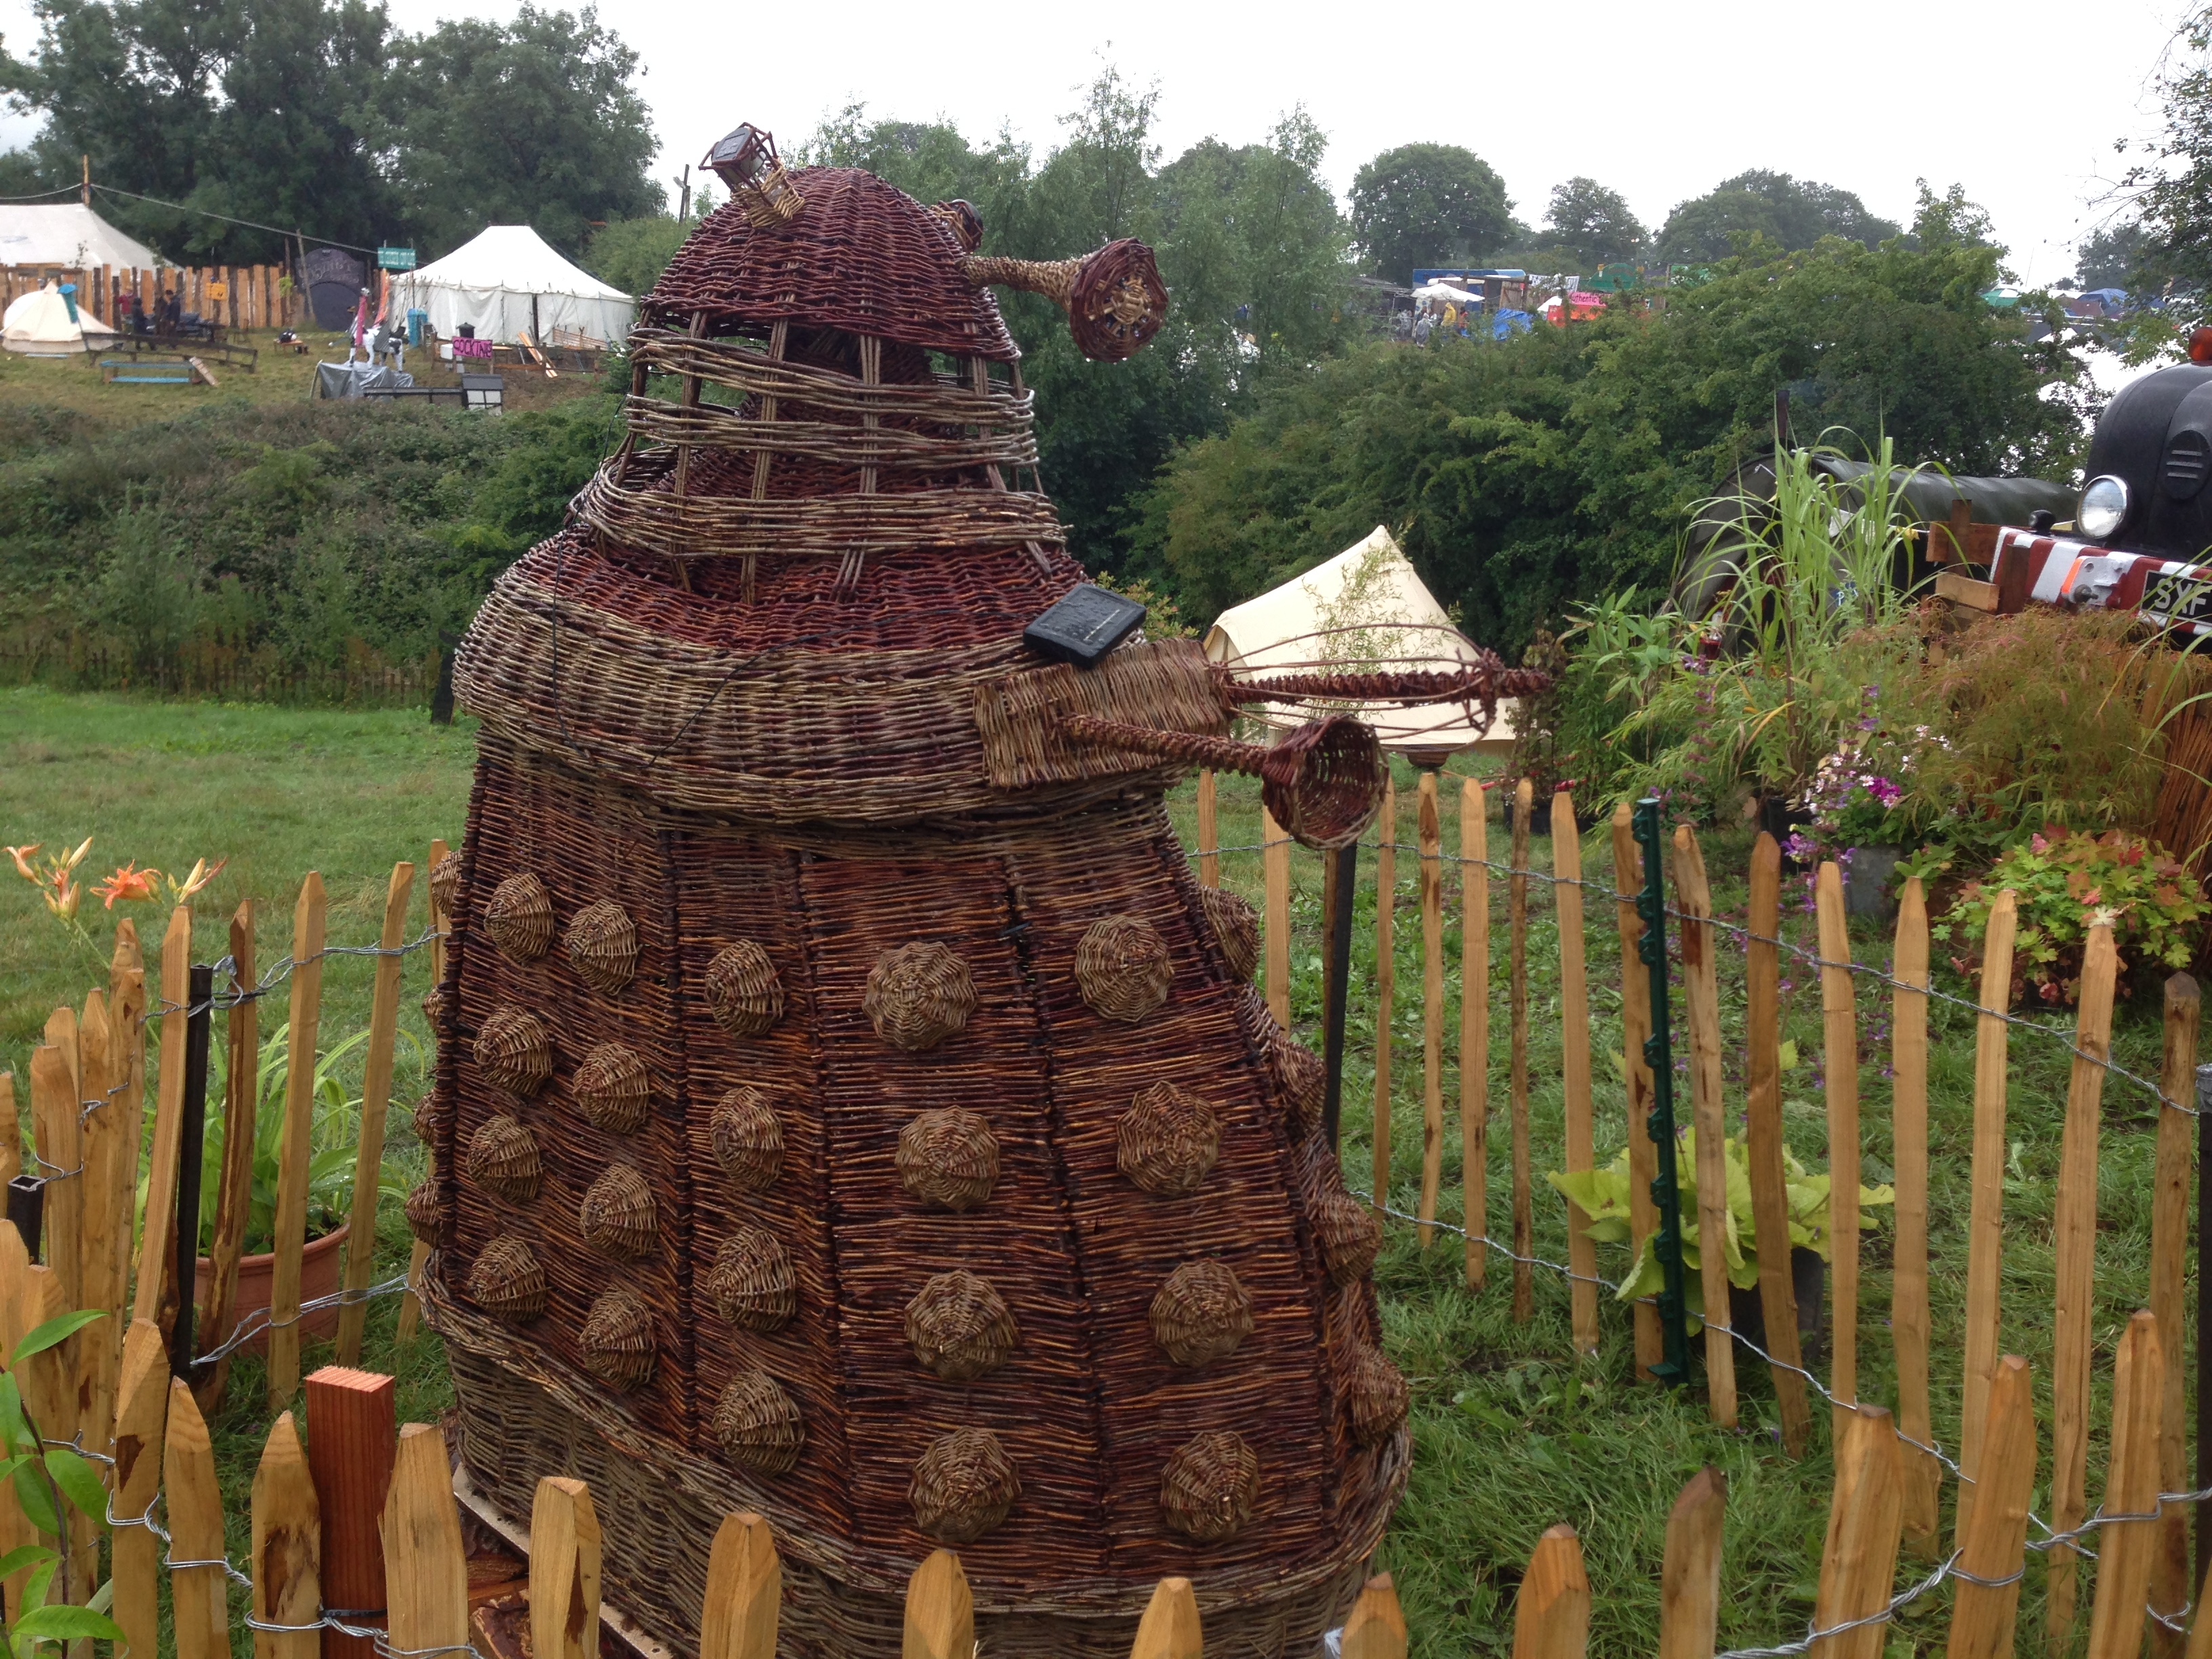 Nozstock_Friday_Dalek